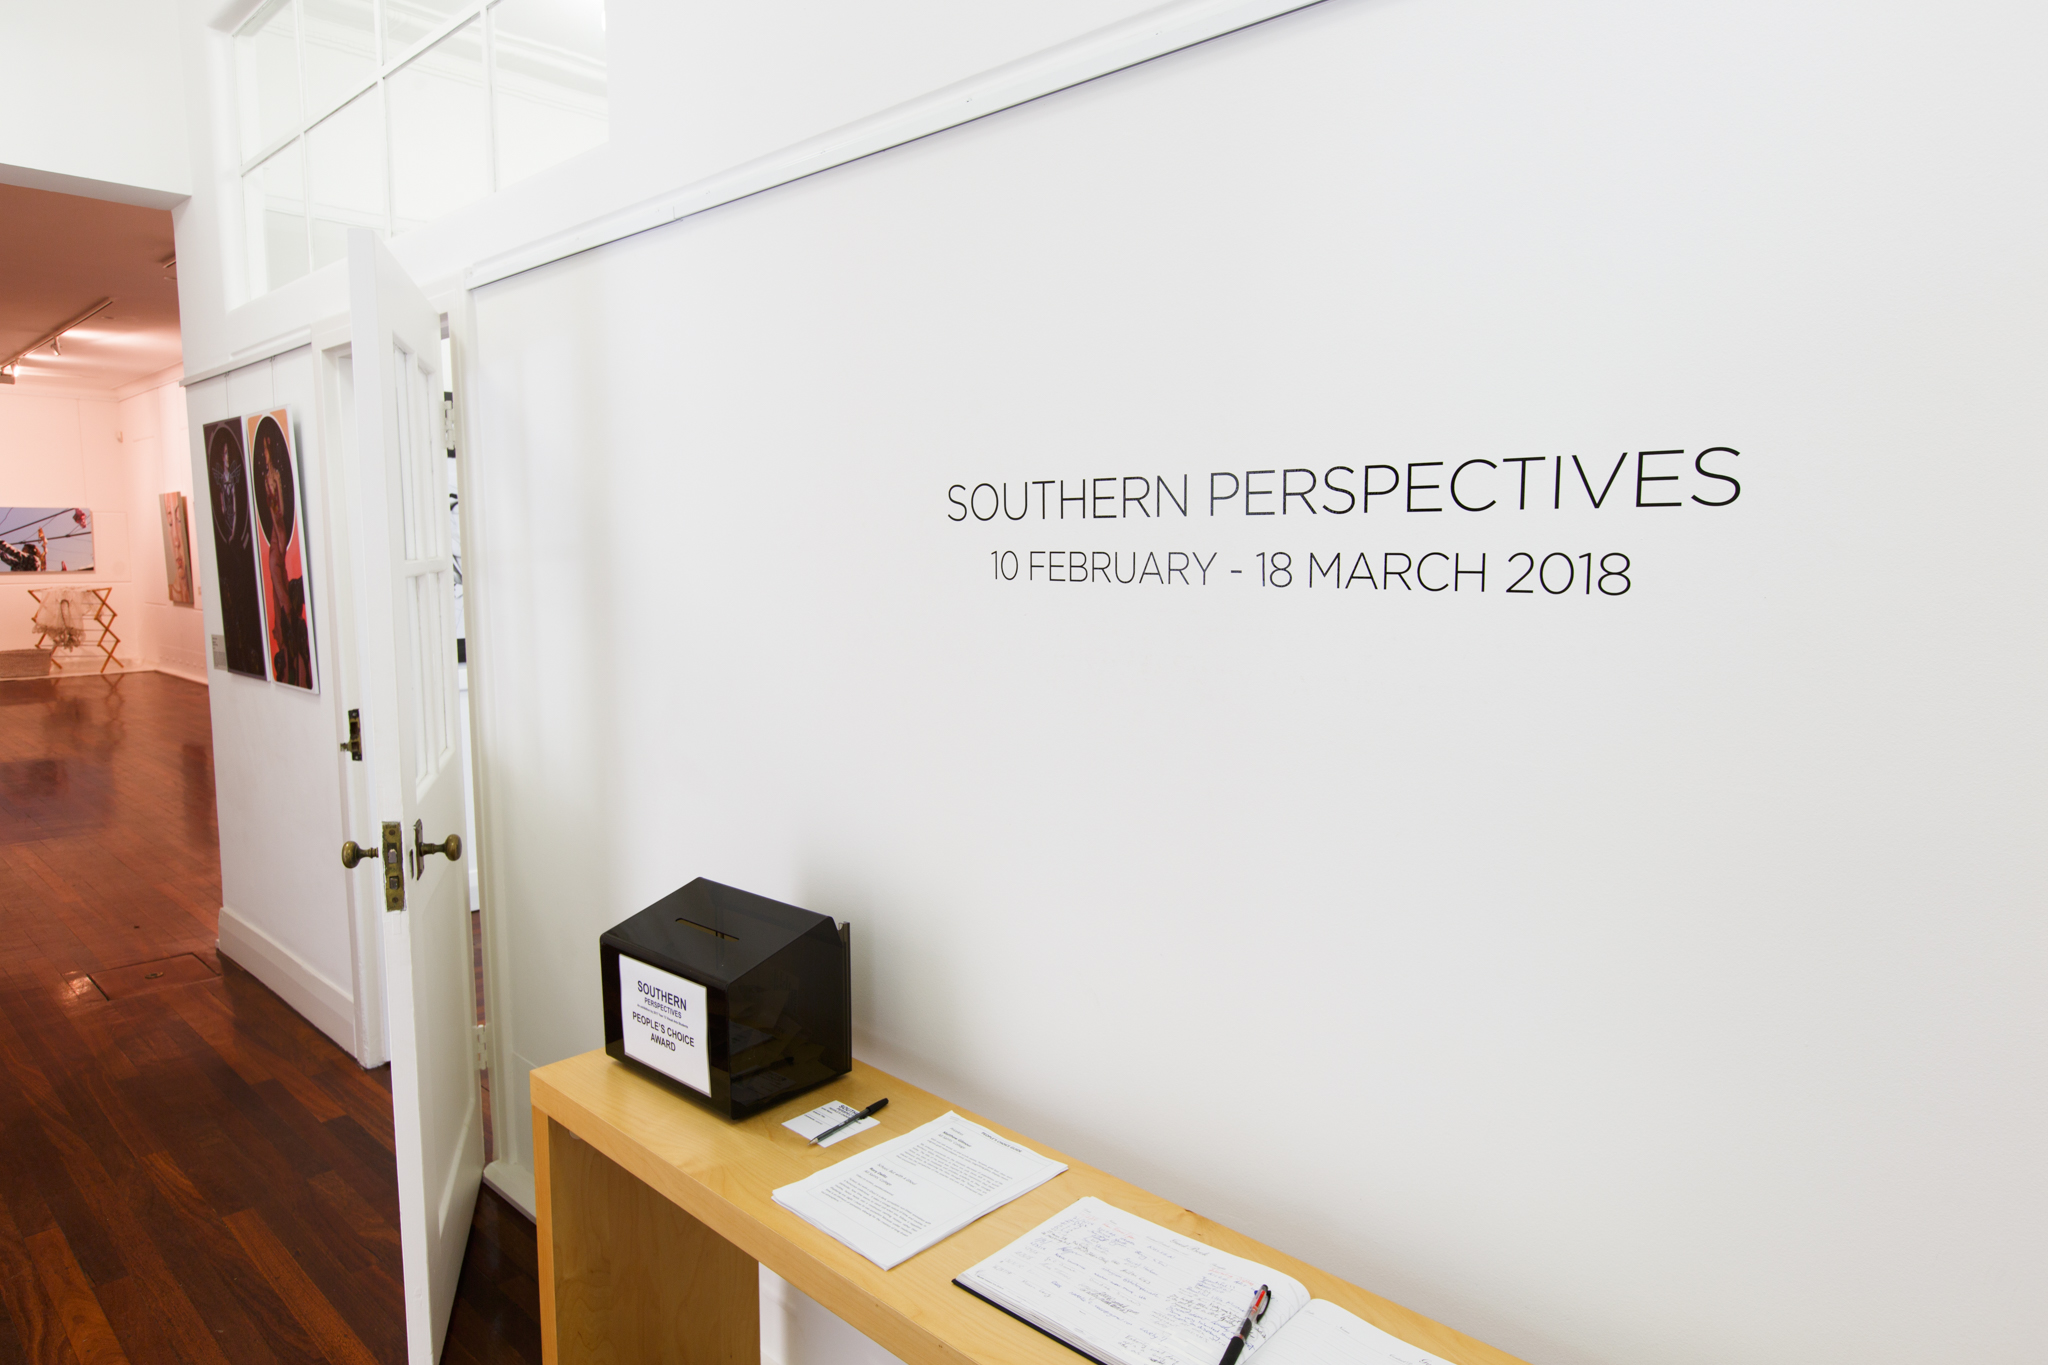 Southern_Perspectives_2018_websize-03